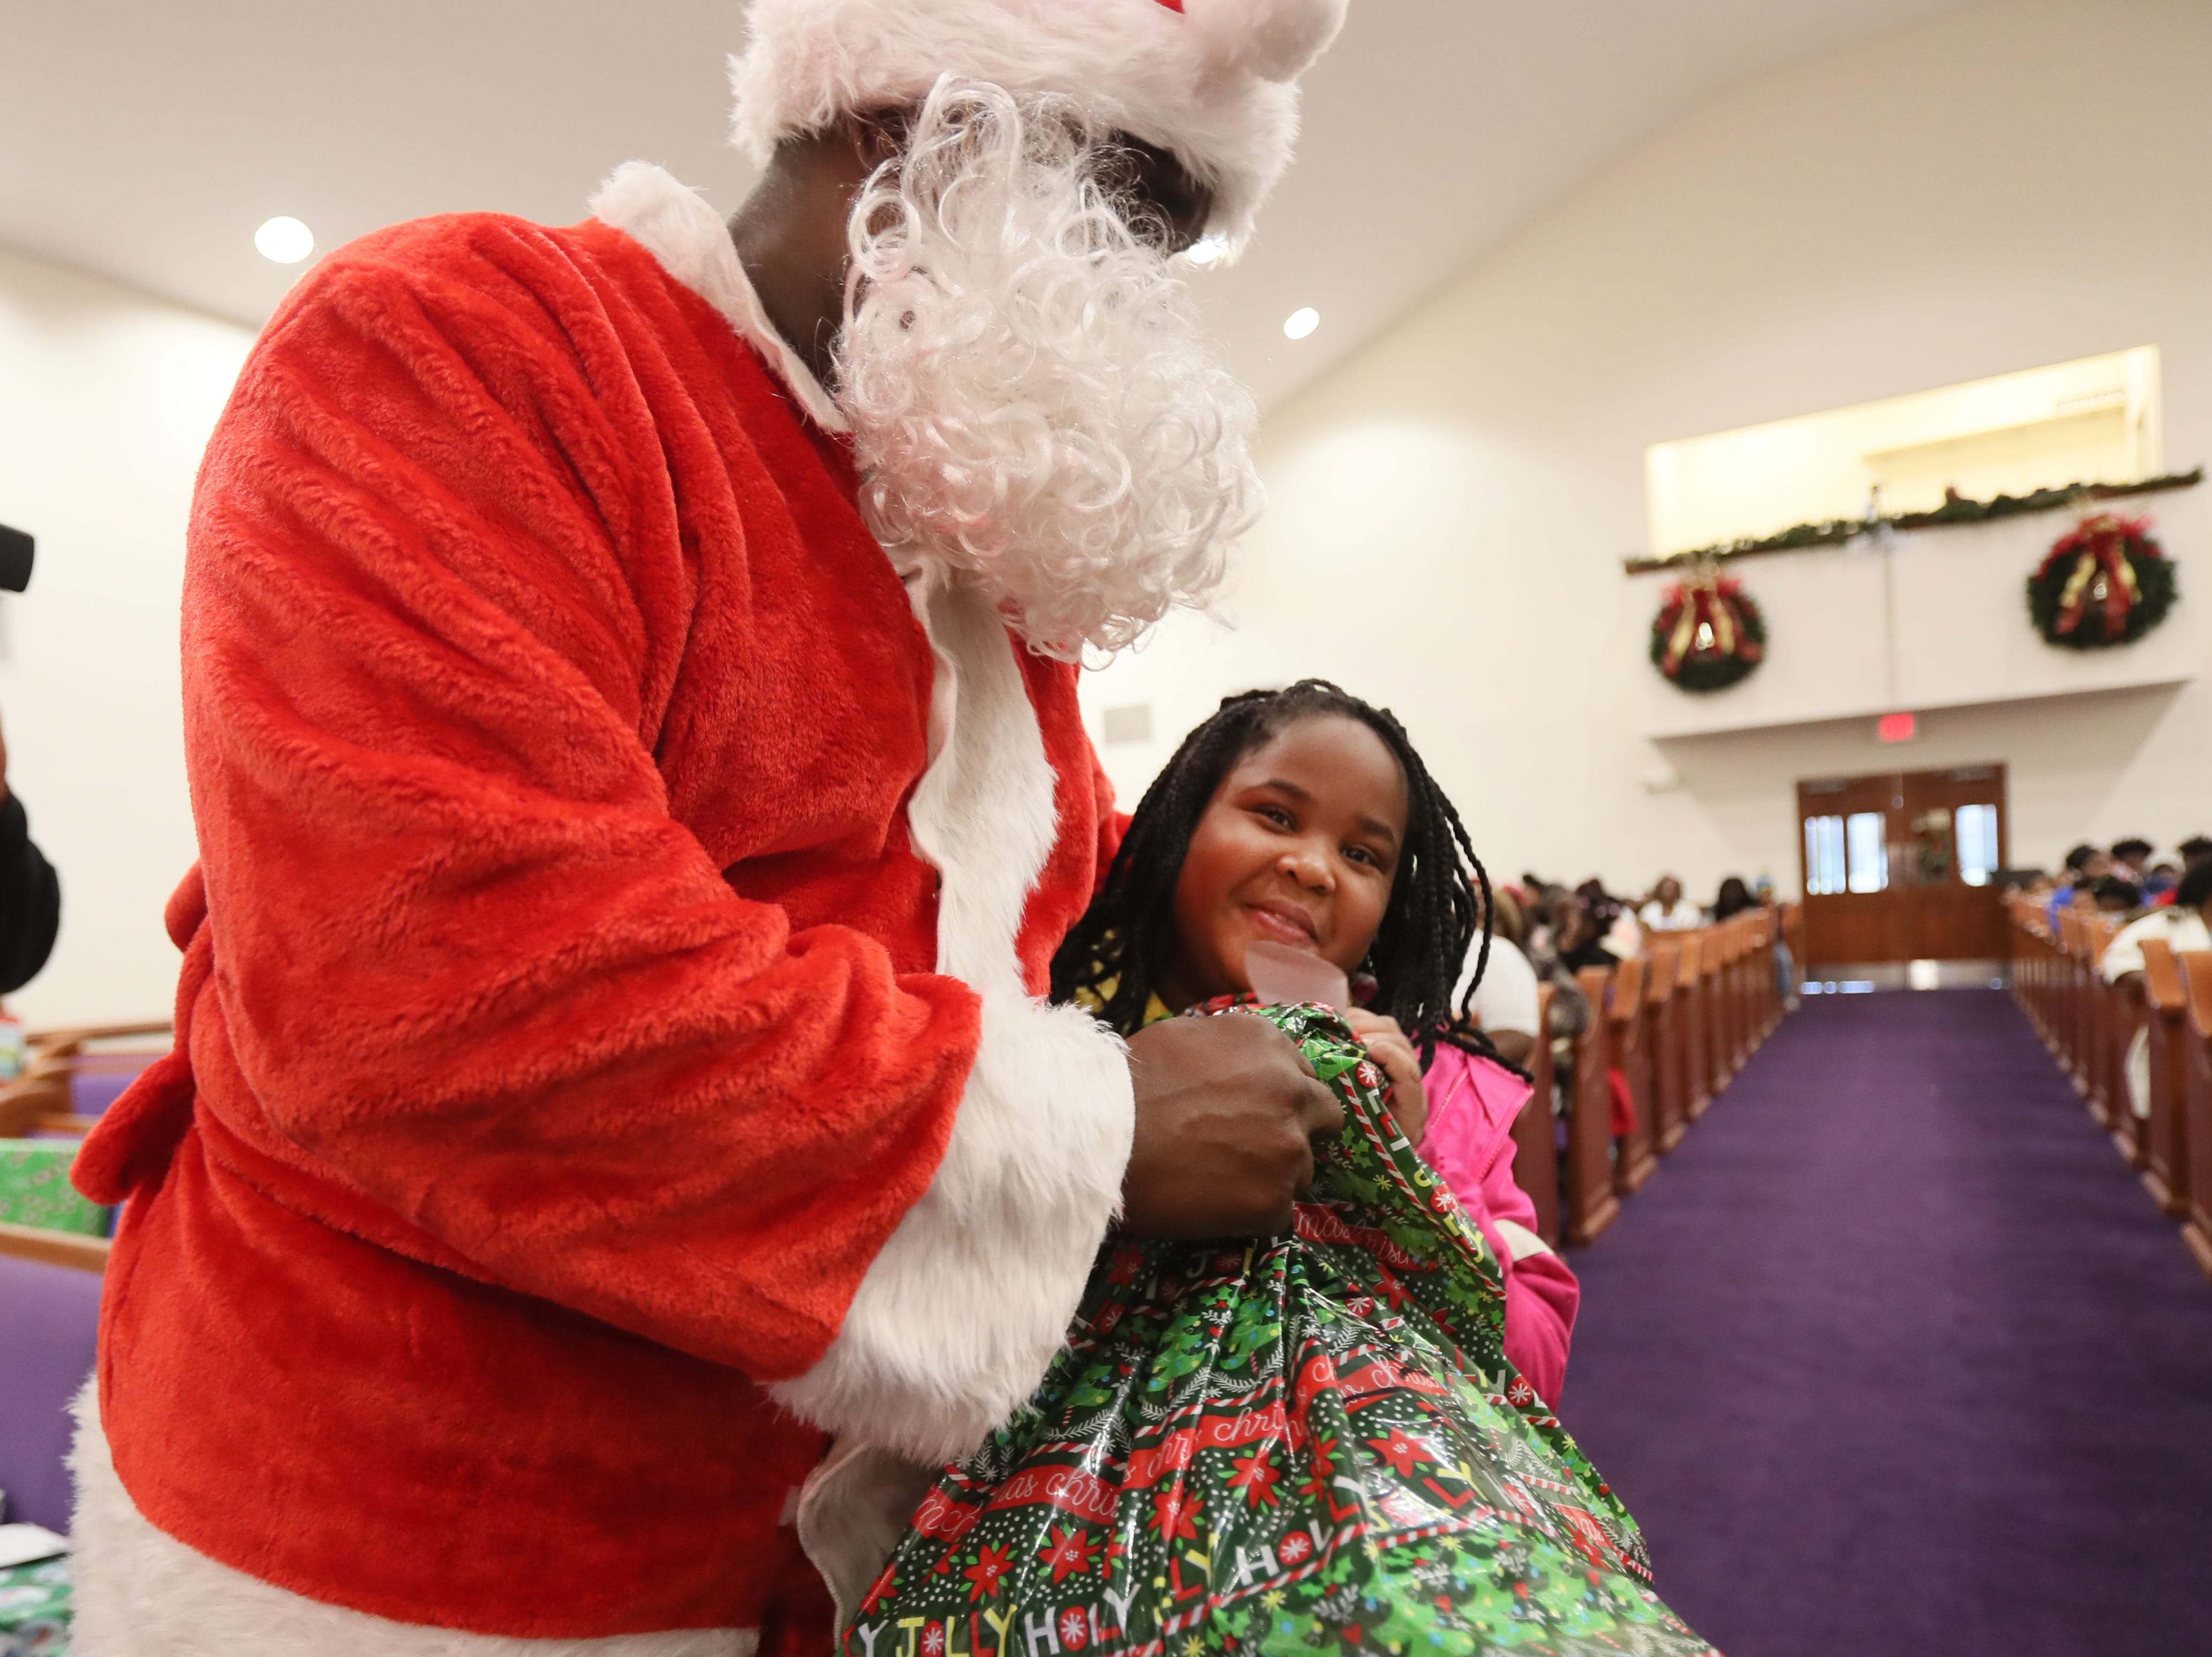 Officer Keith Payne hands out gifts dressed as Santa to Natiyah Fason, 8, as the MPD's Community Outreach Program brings Christmas cheer to dozens of families at Grace Missionary Baptist Church on Thursday, Dec. 20, 2018.